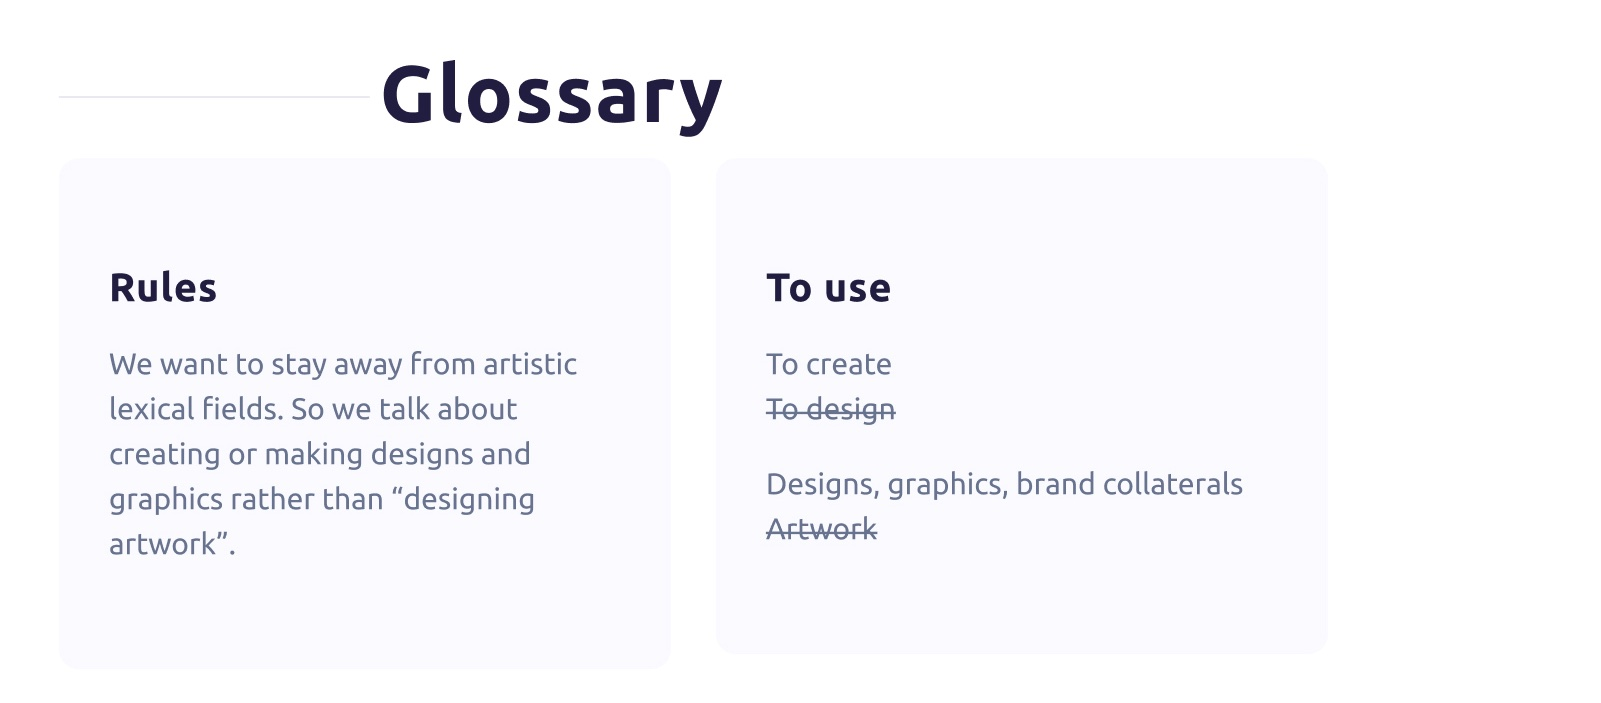 Glossary rules with words to use and others to avoid to stay on-brand